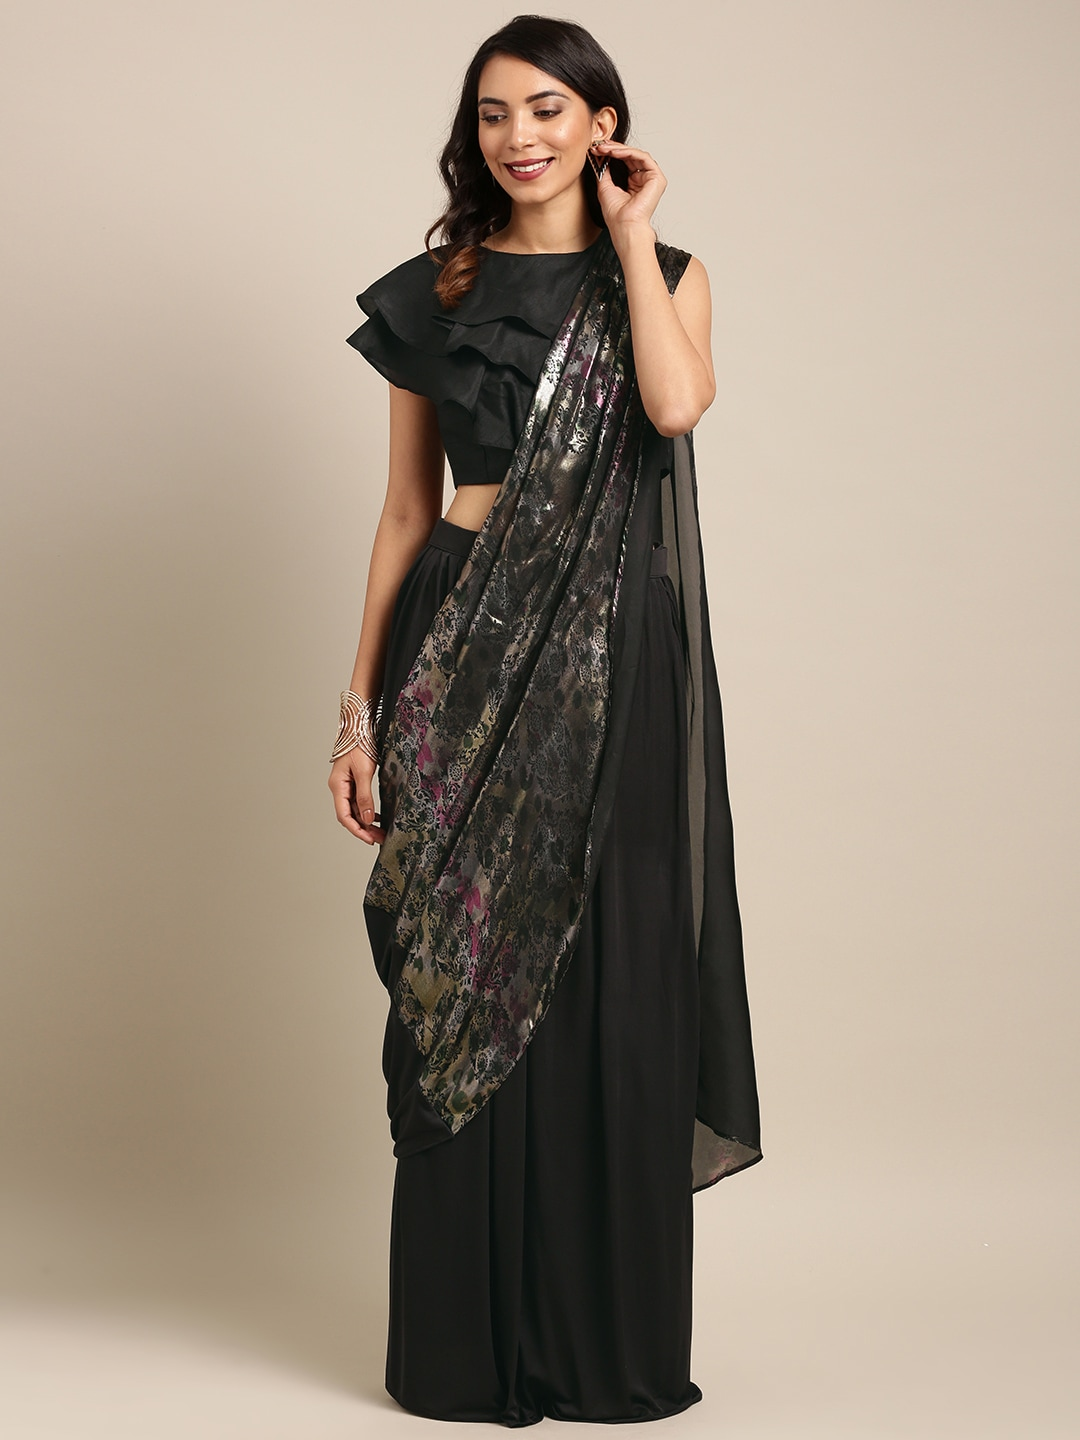 b8d1d807770 Black Saree - Black Designer Sarees Online   Best Price